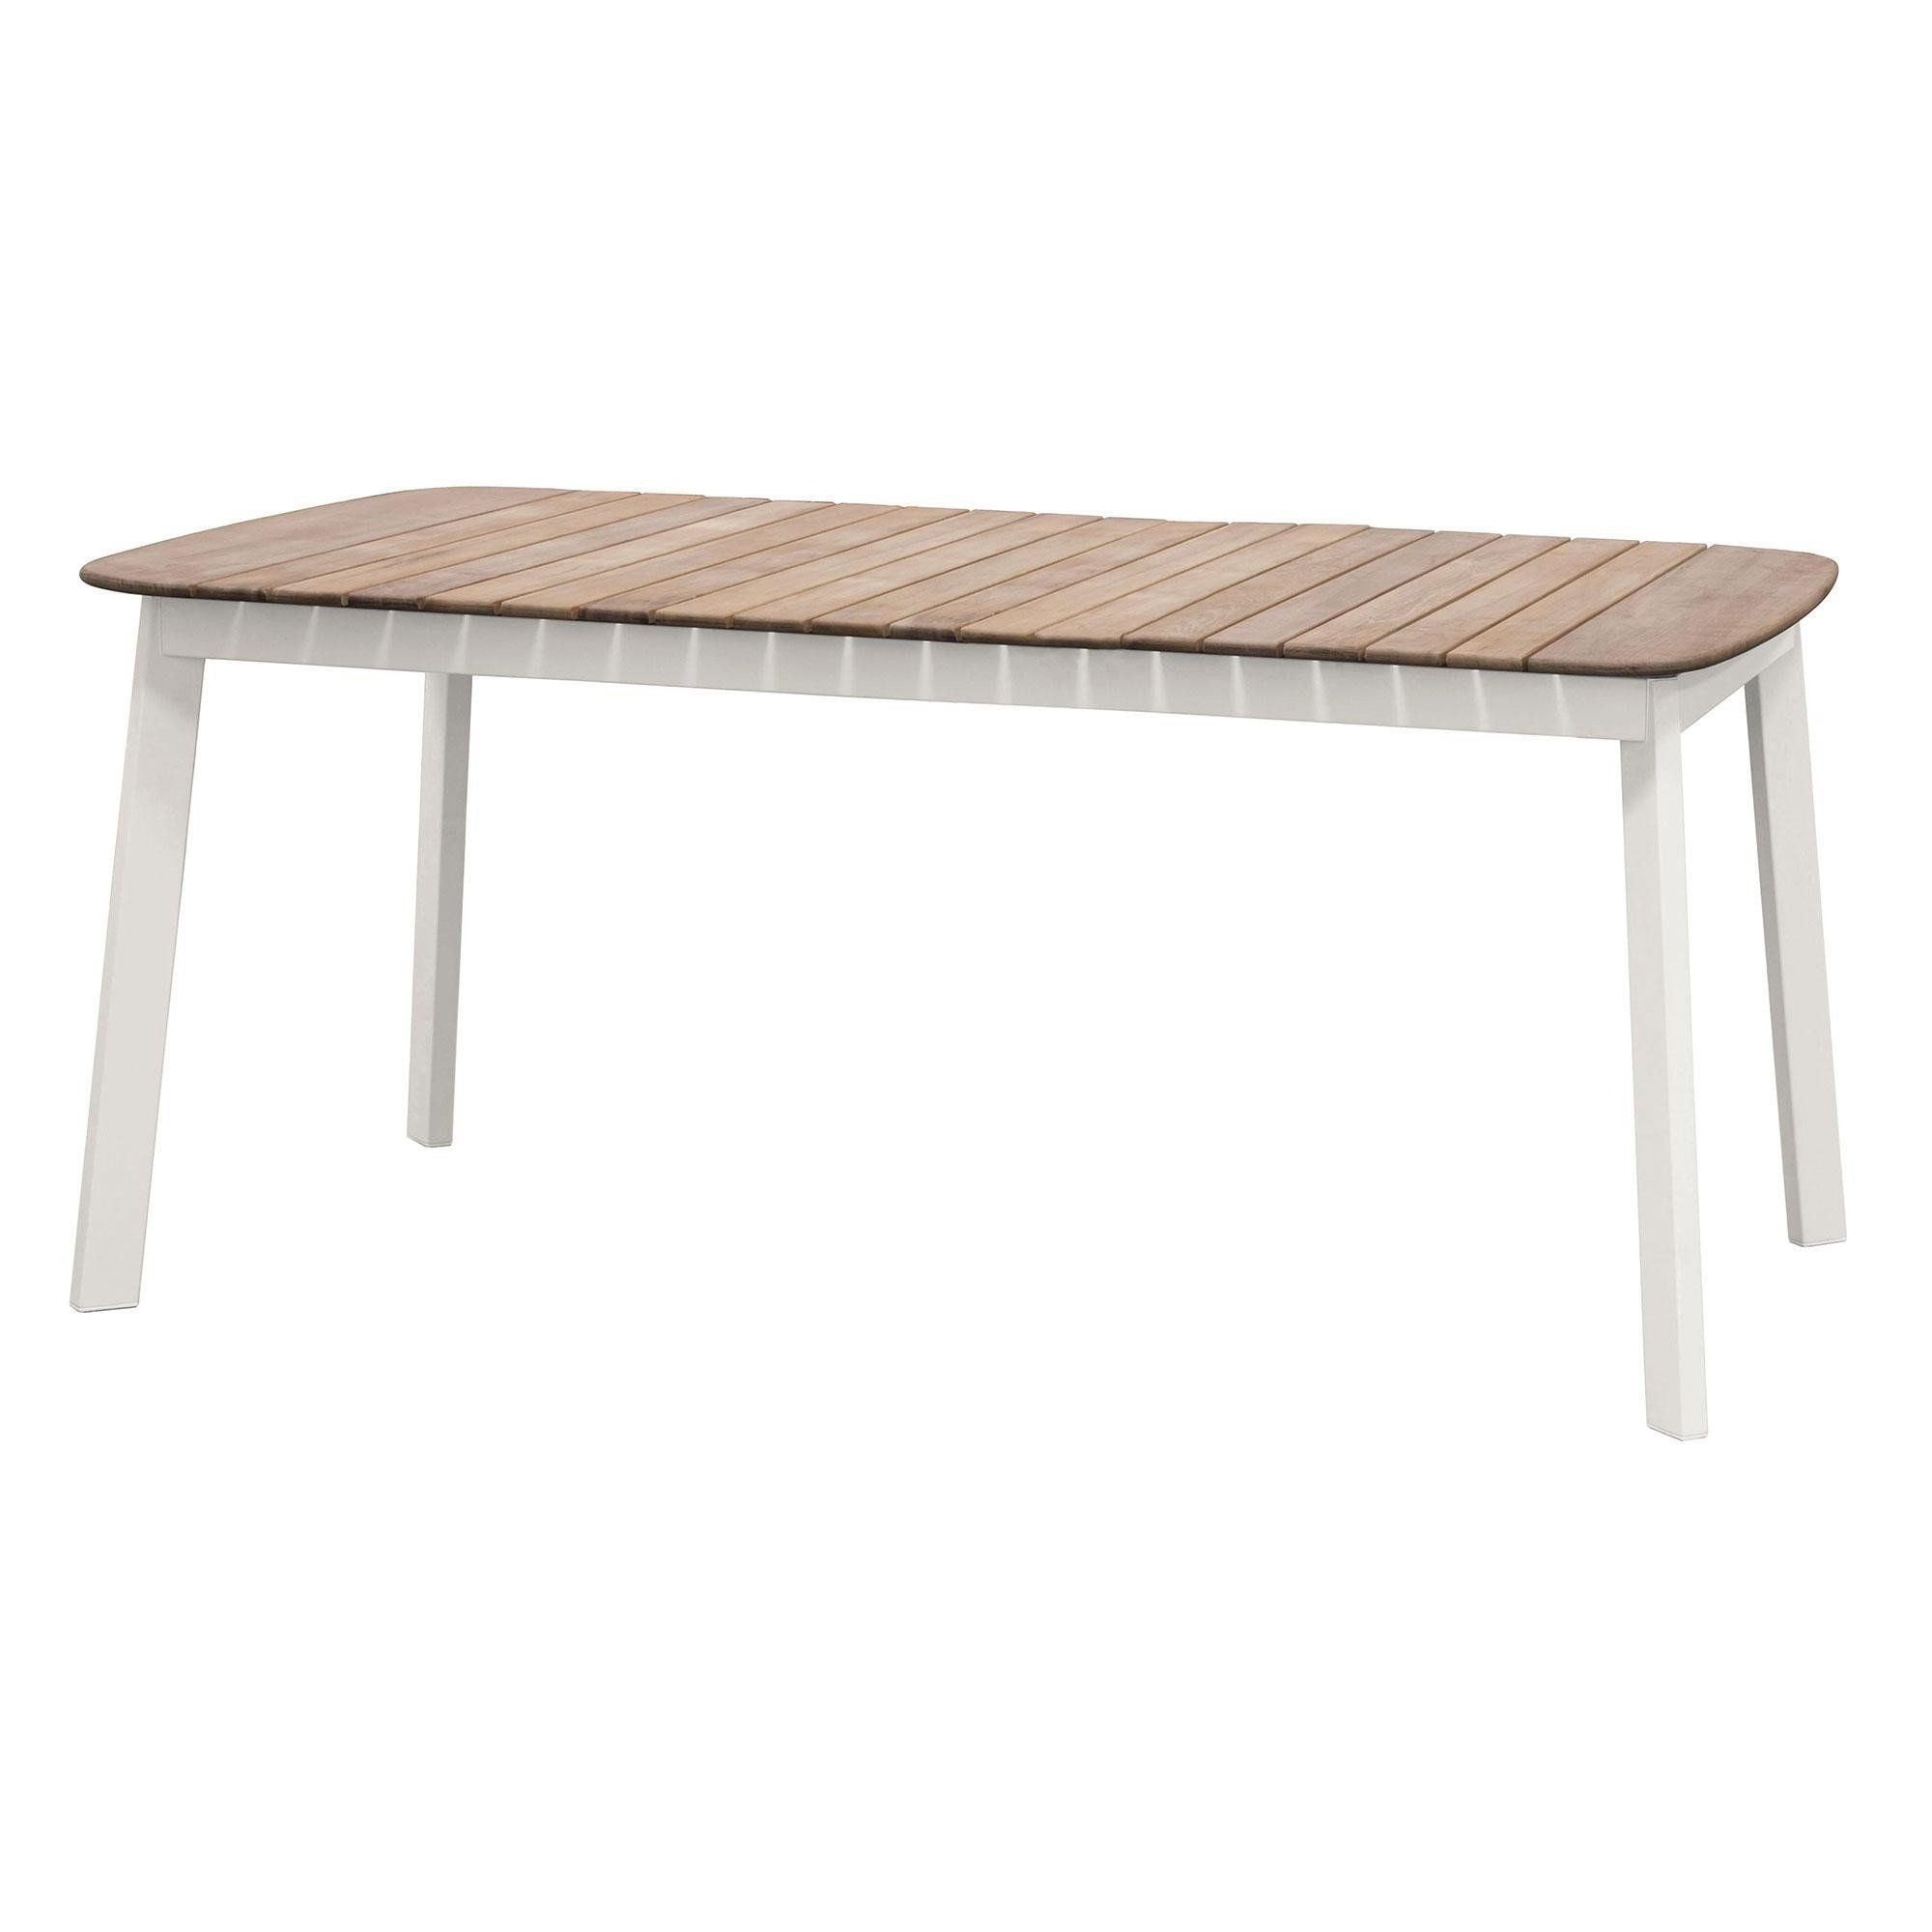 Emu Shine Garden Table AmbienteDirect - Teak and aluminium outdoor table